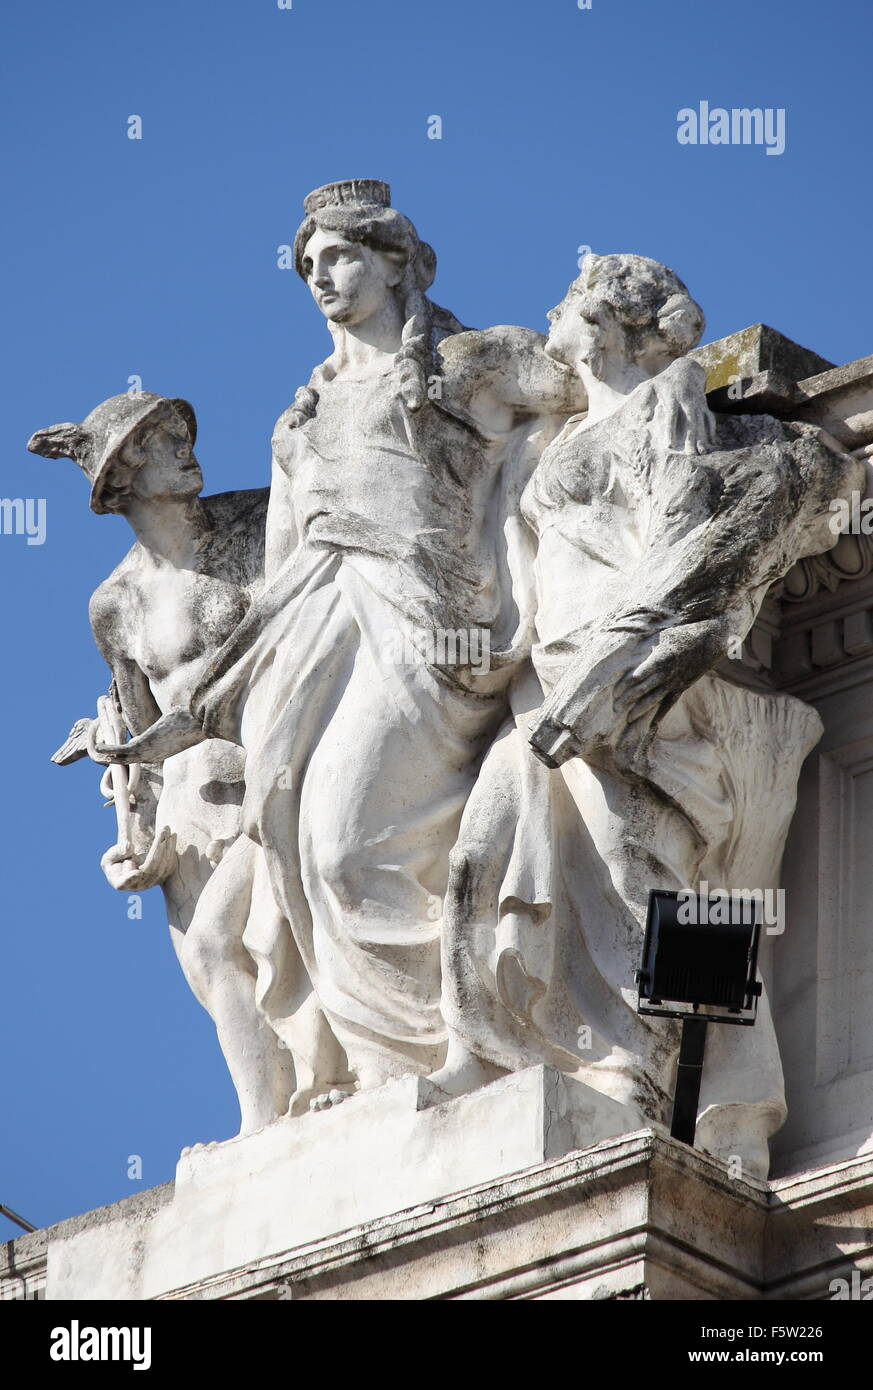 38cdab0bcc42 ... winged sandals. B8ENAR (RM). Statue of Hermes and the Goddess Roma in  Colonna Square of Rome